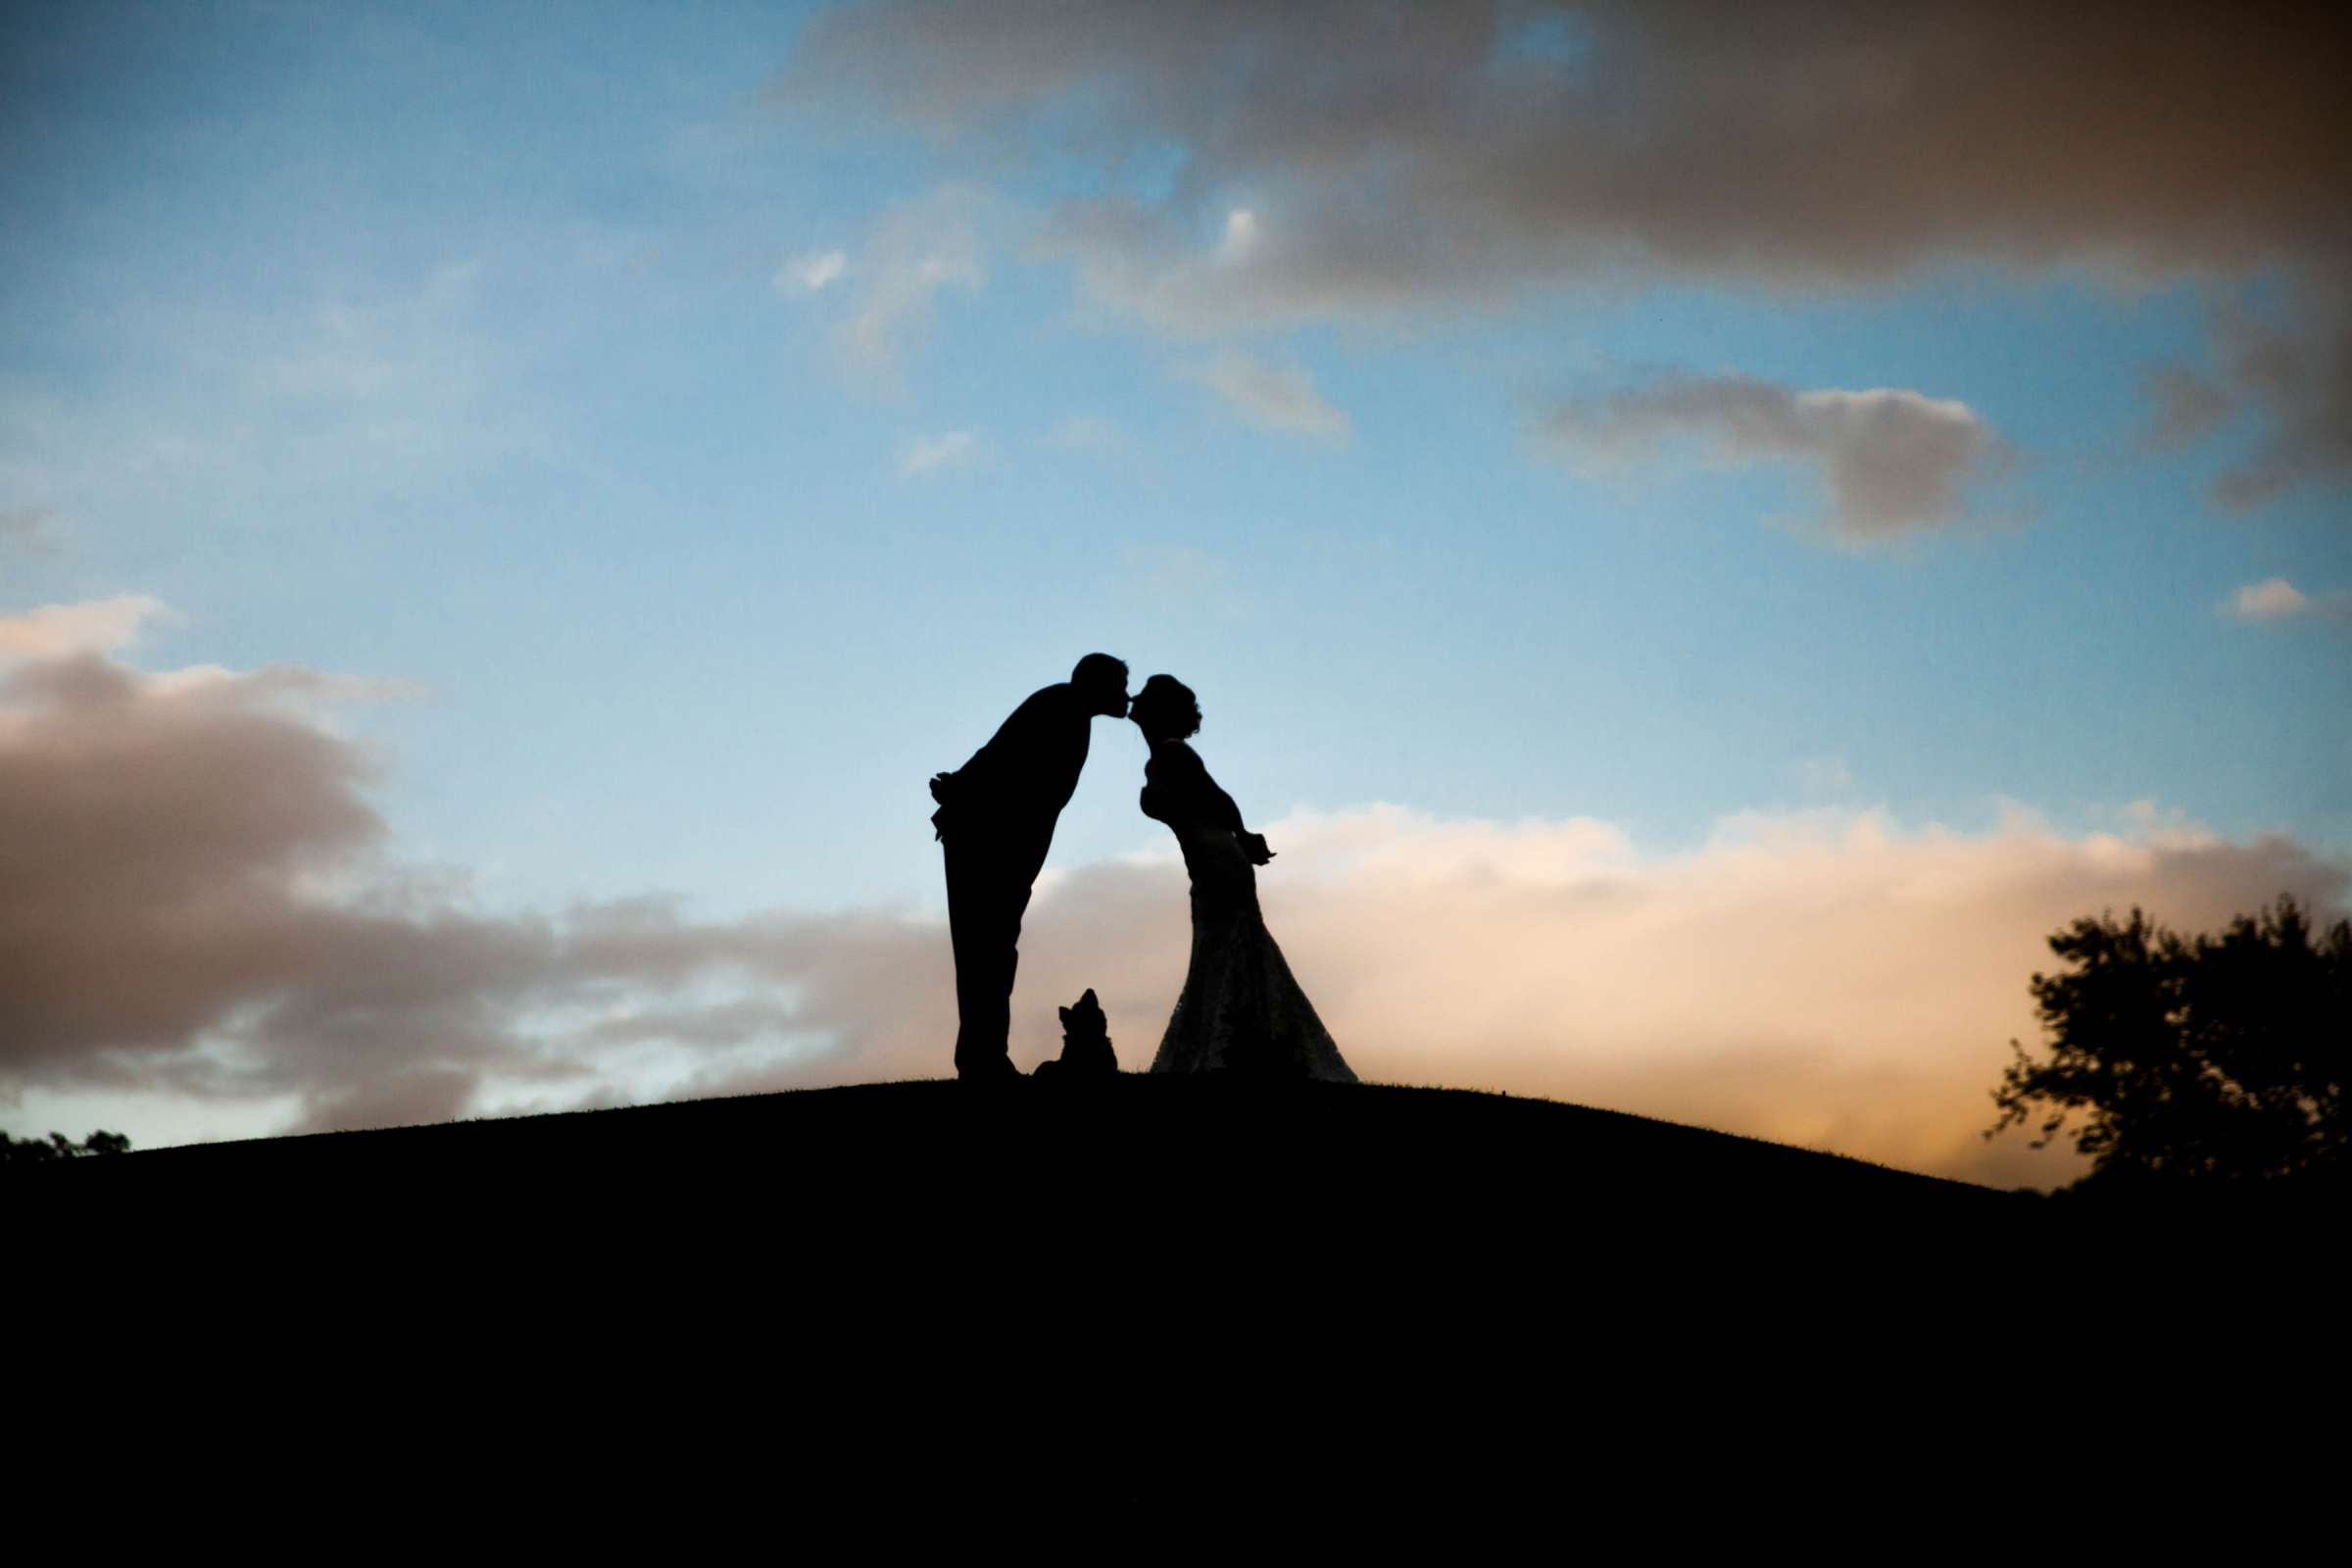 Sunset at Temecula Creek Inn Wedding, Therese and Joseph Wedding Photo #1 by True Photography